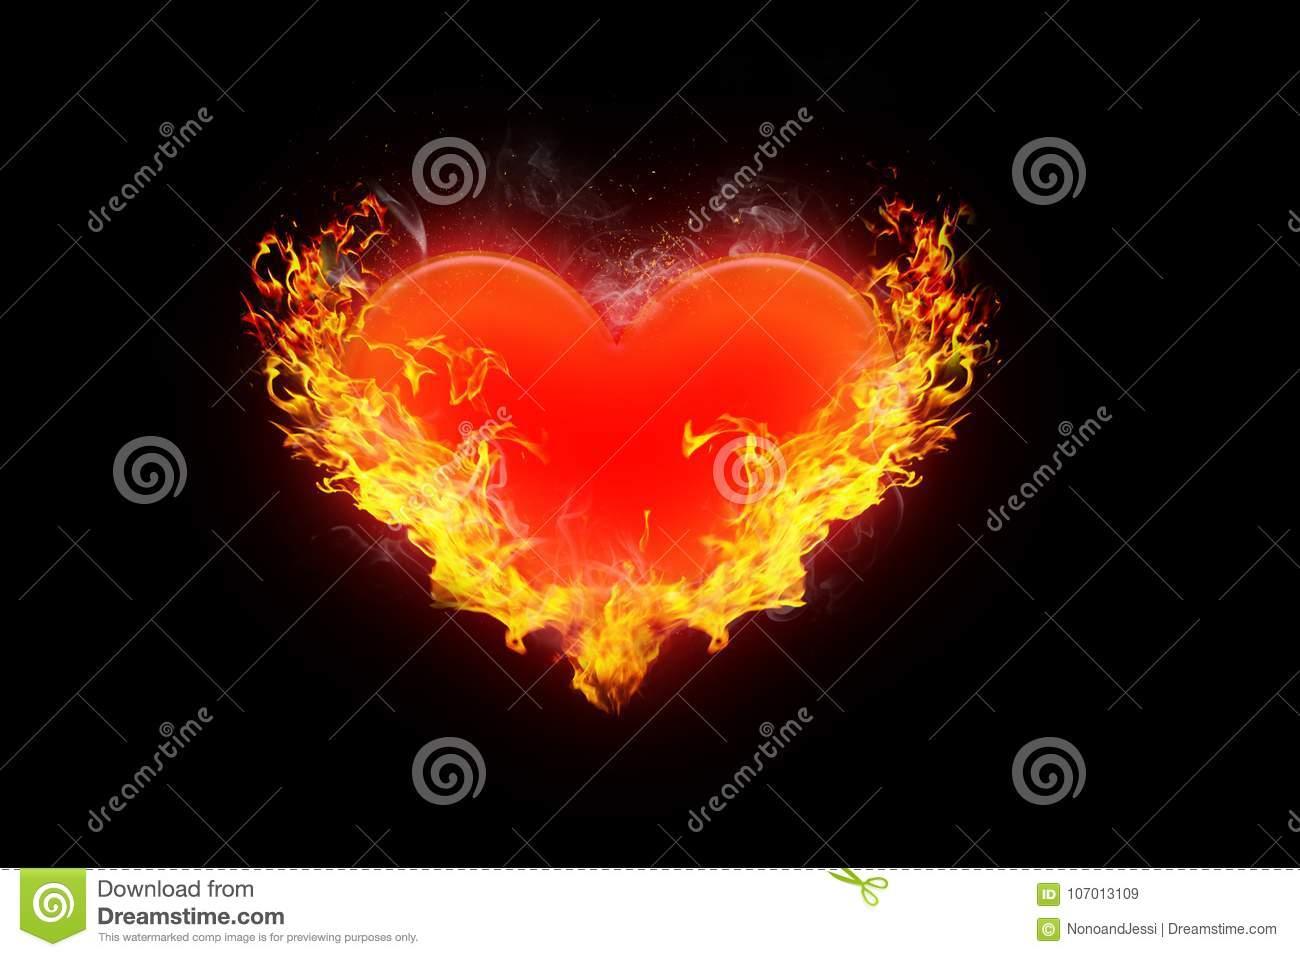 Illustration of Burning red heart surrounded by orange flames on a conceptual black background of love, romance and valentine